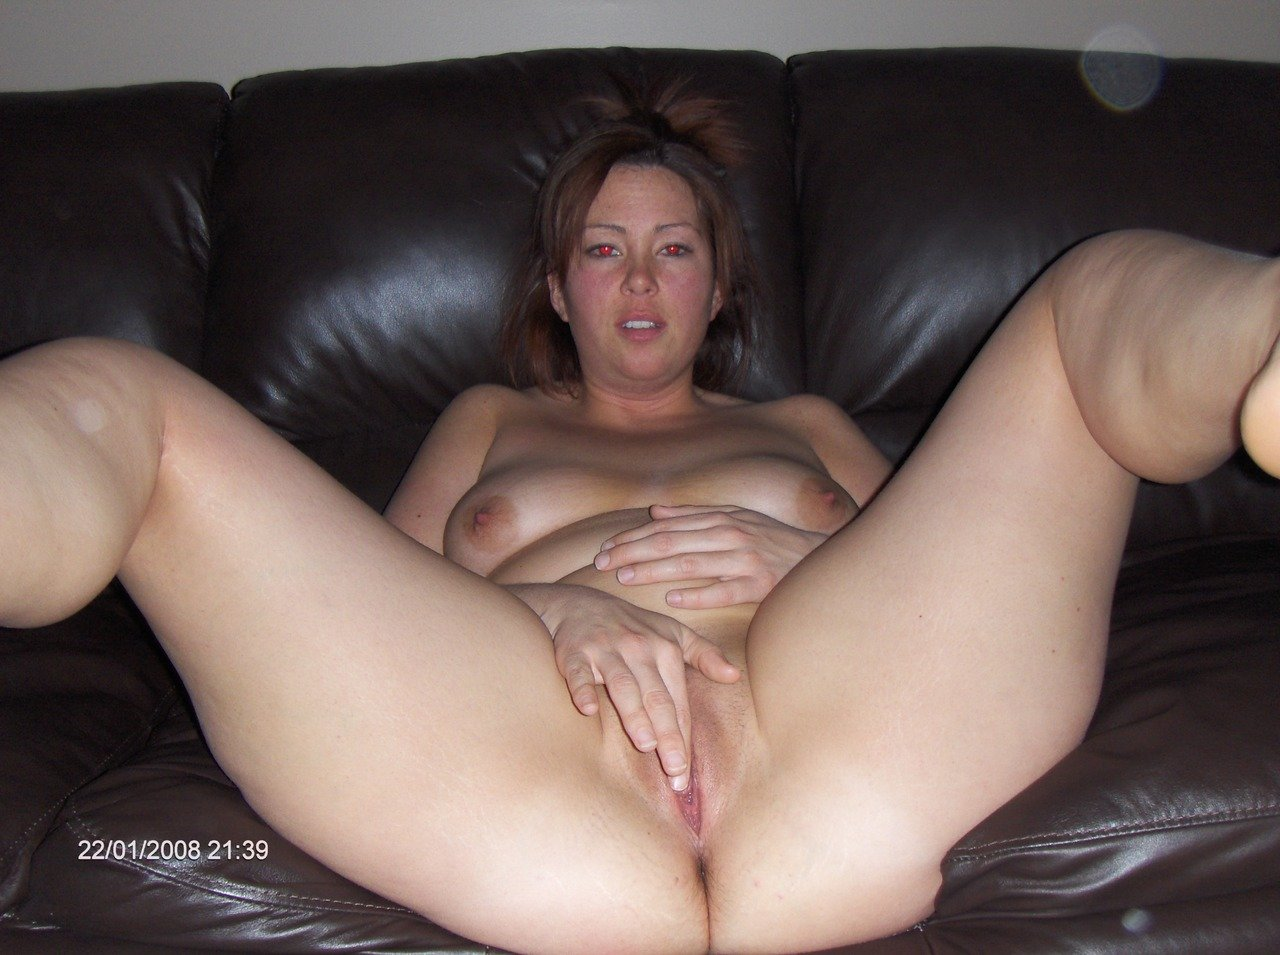 hot young milf nude there